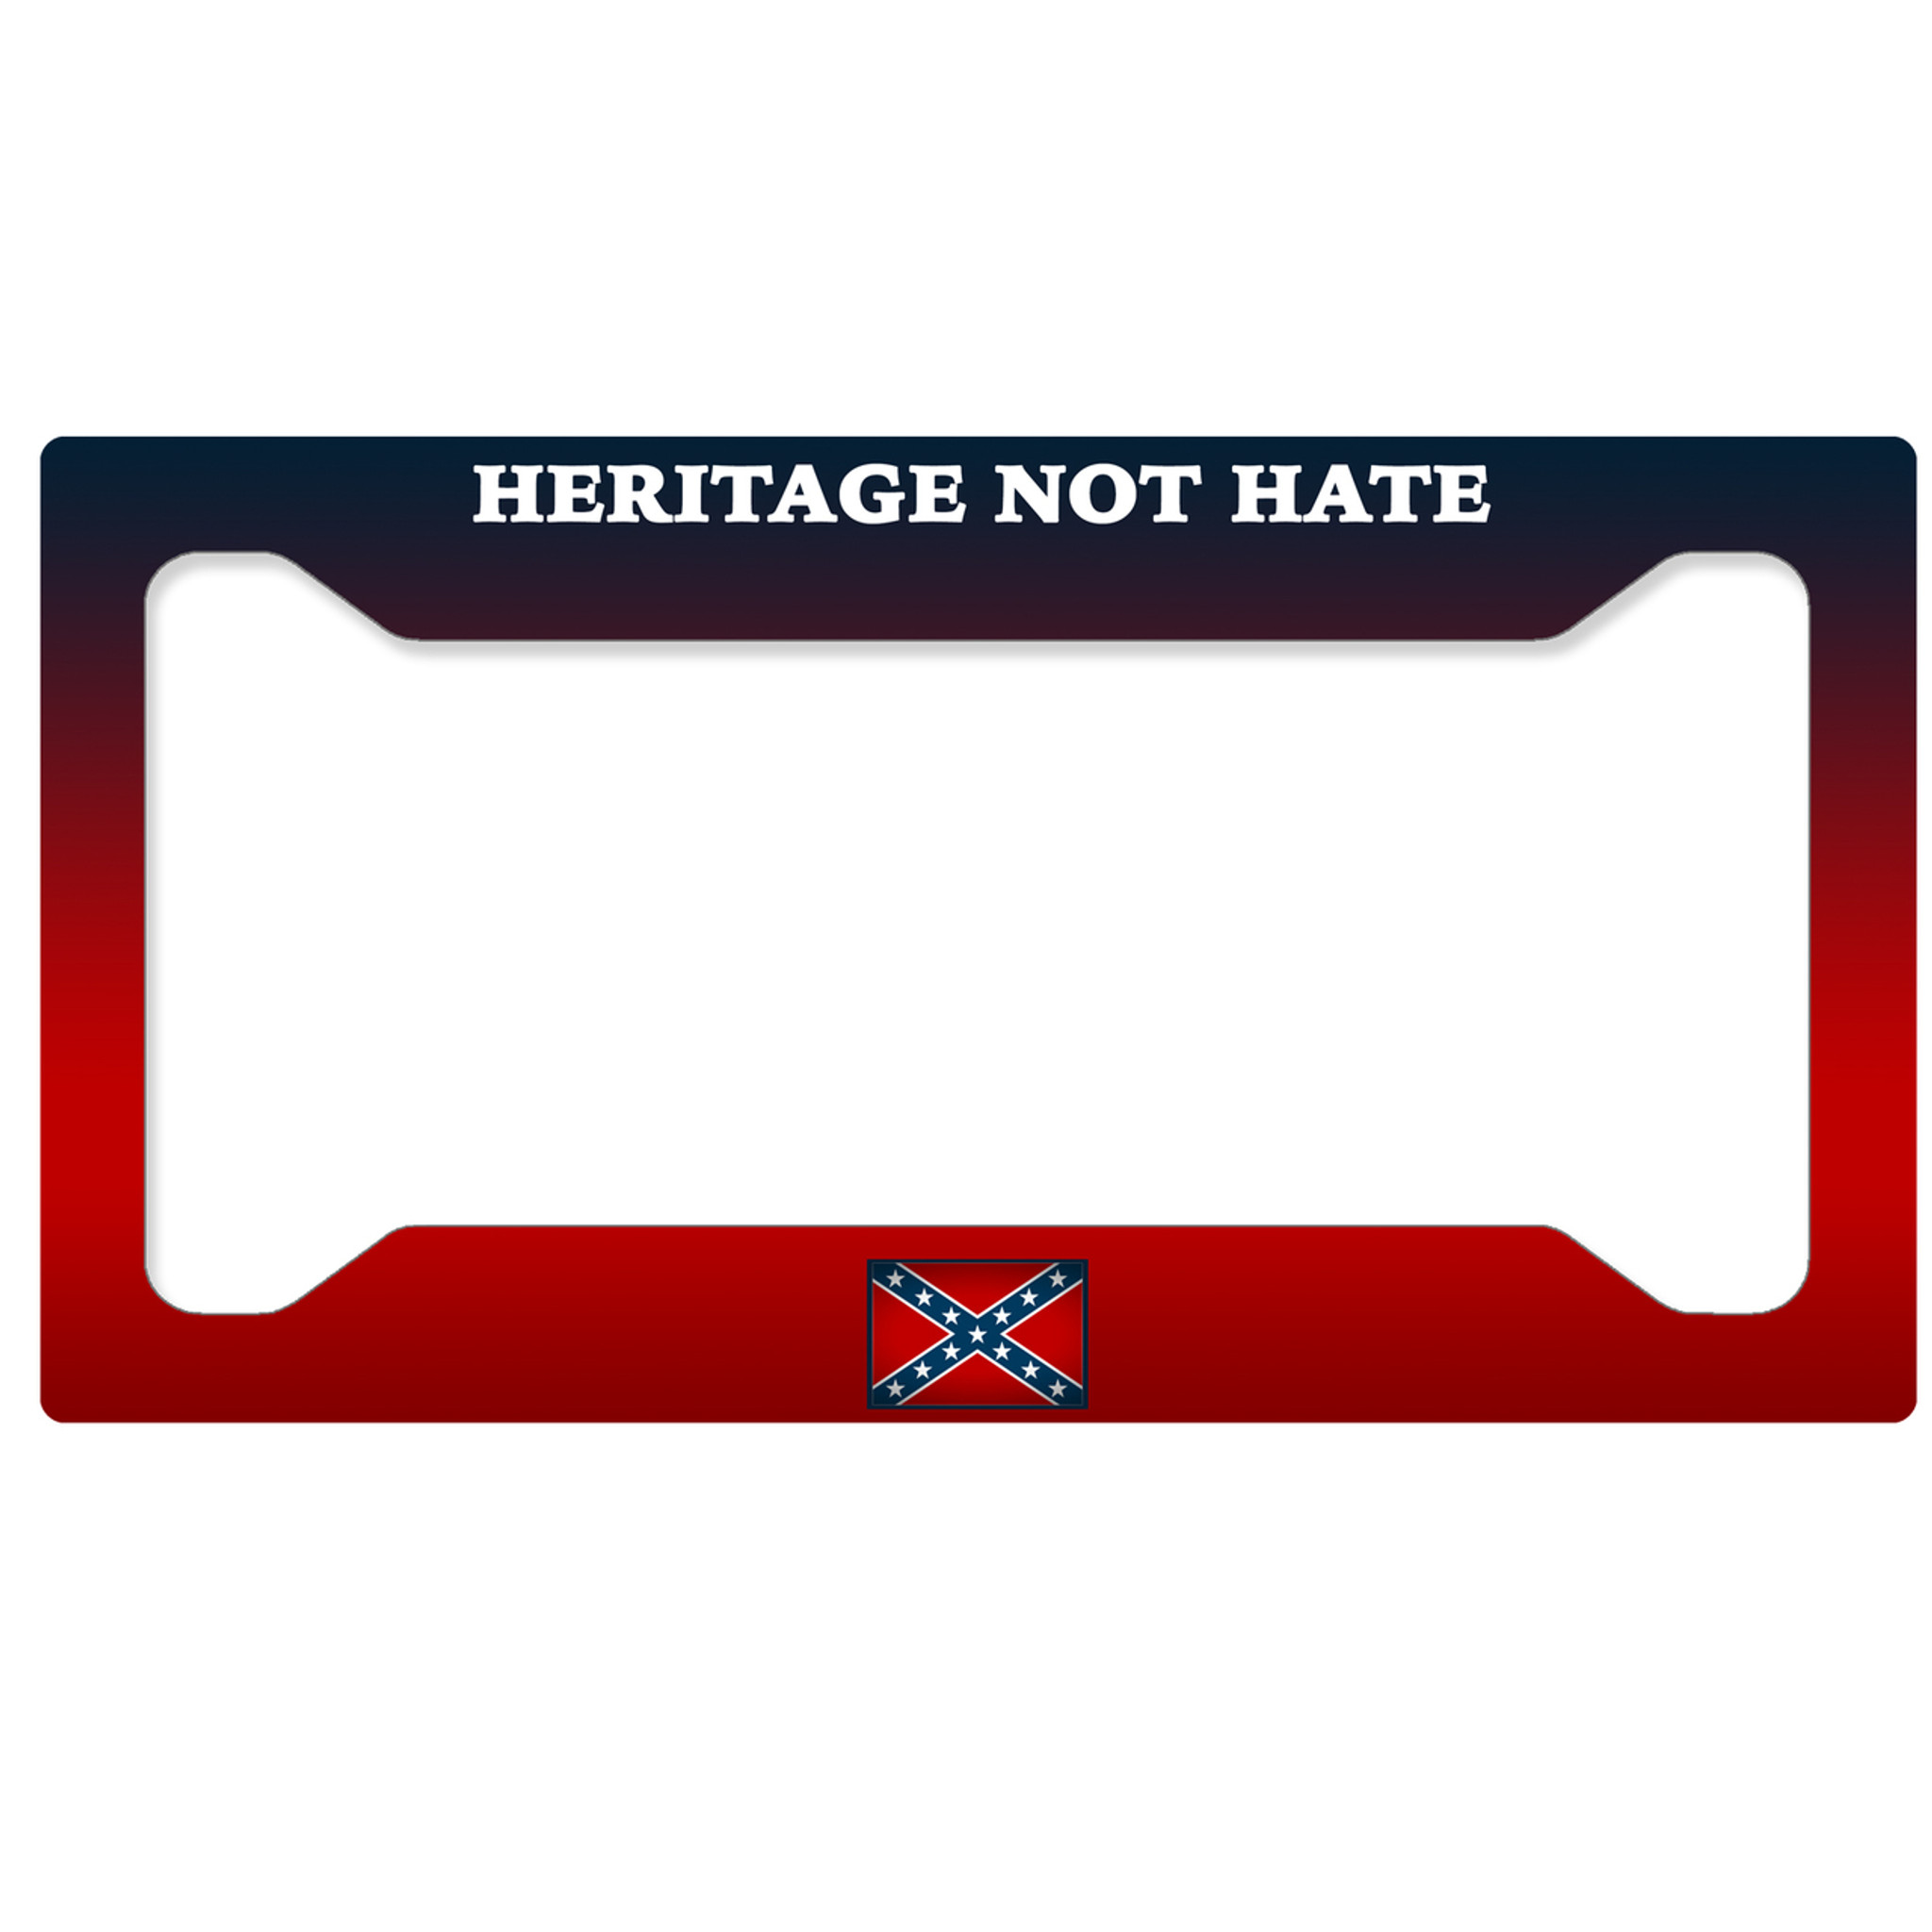 Aluminum License Plate Frame >> Rebel Flag License Plate Frame - Heritage Not Hate - SimplyCustomized